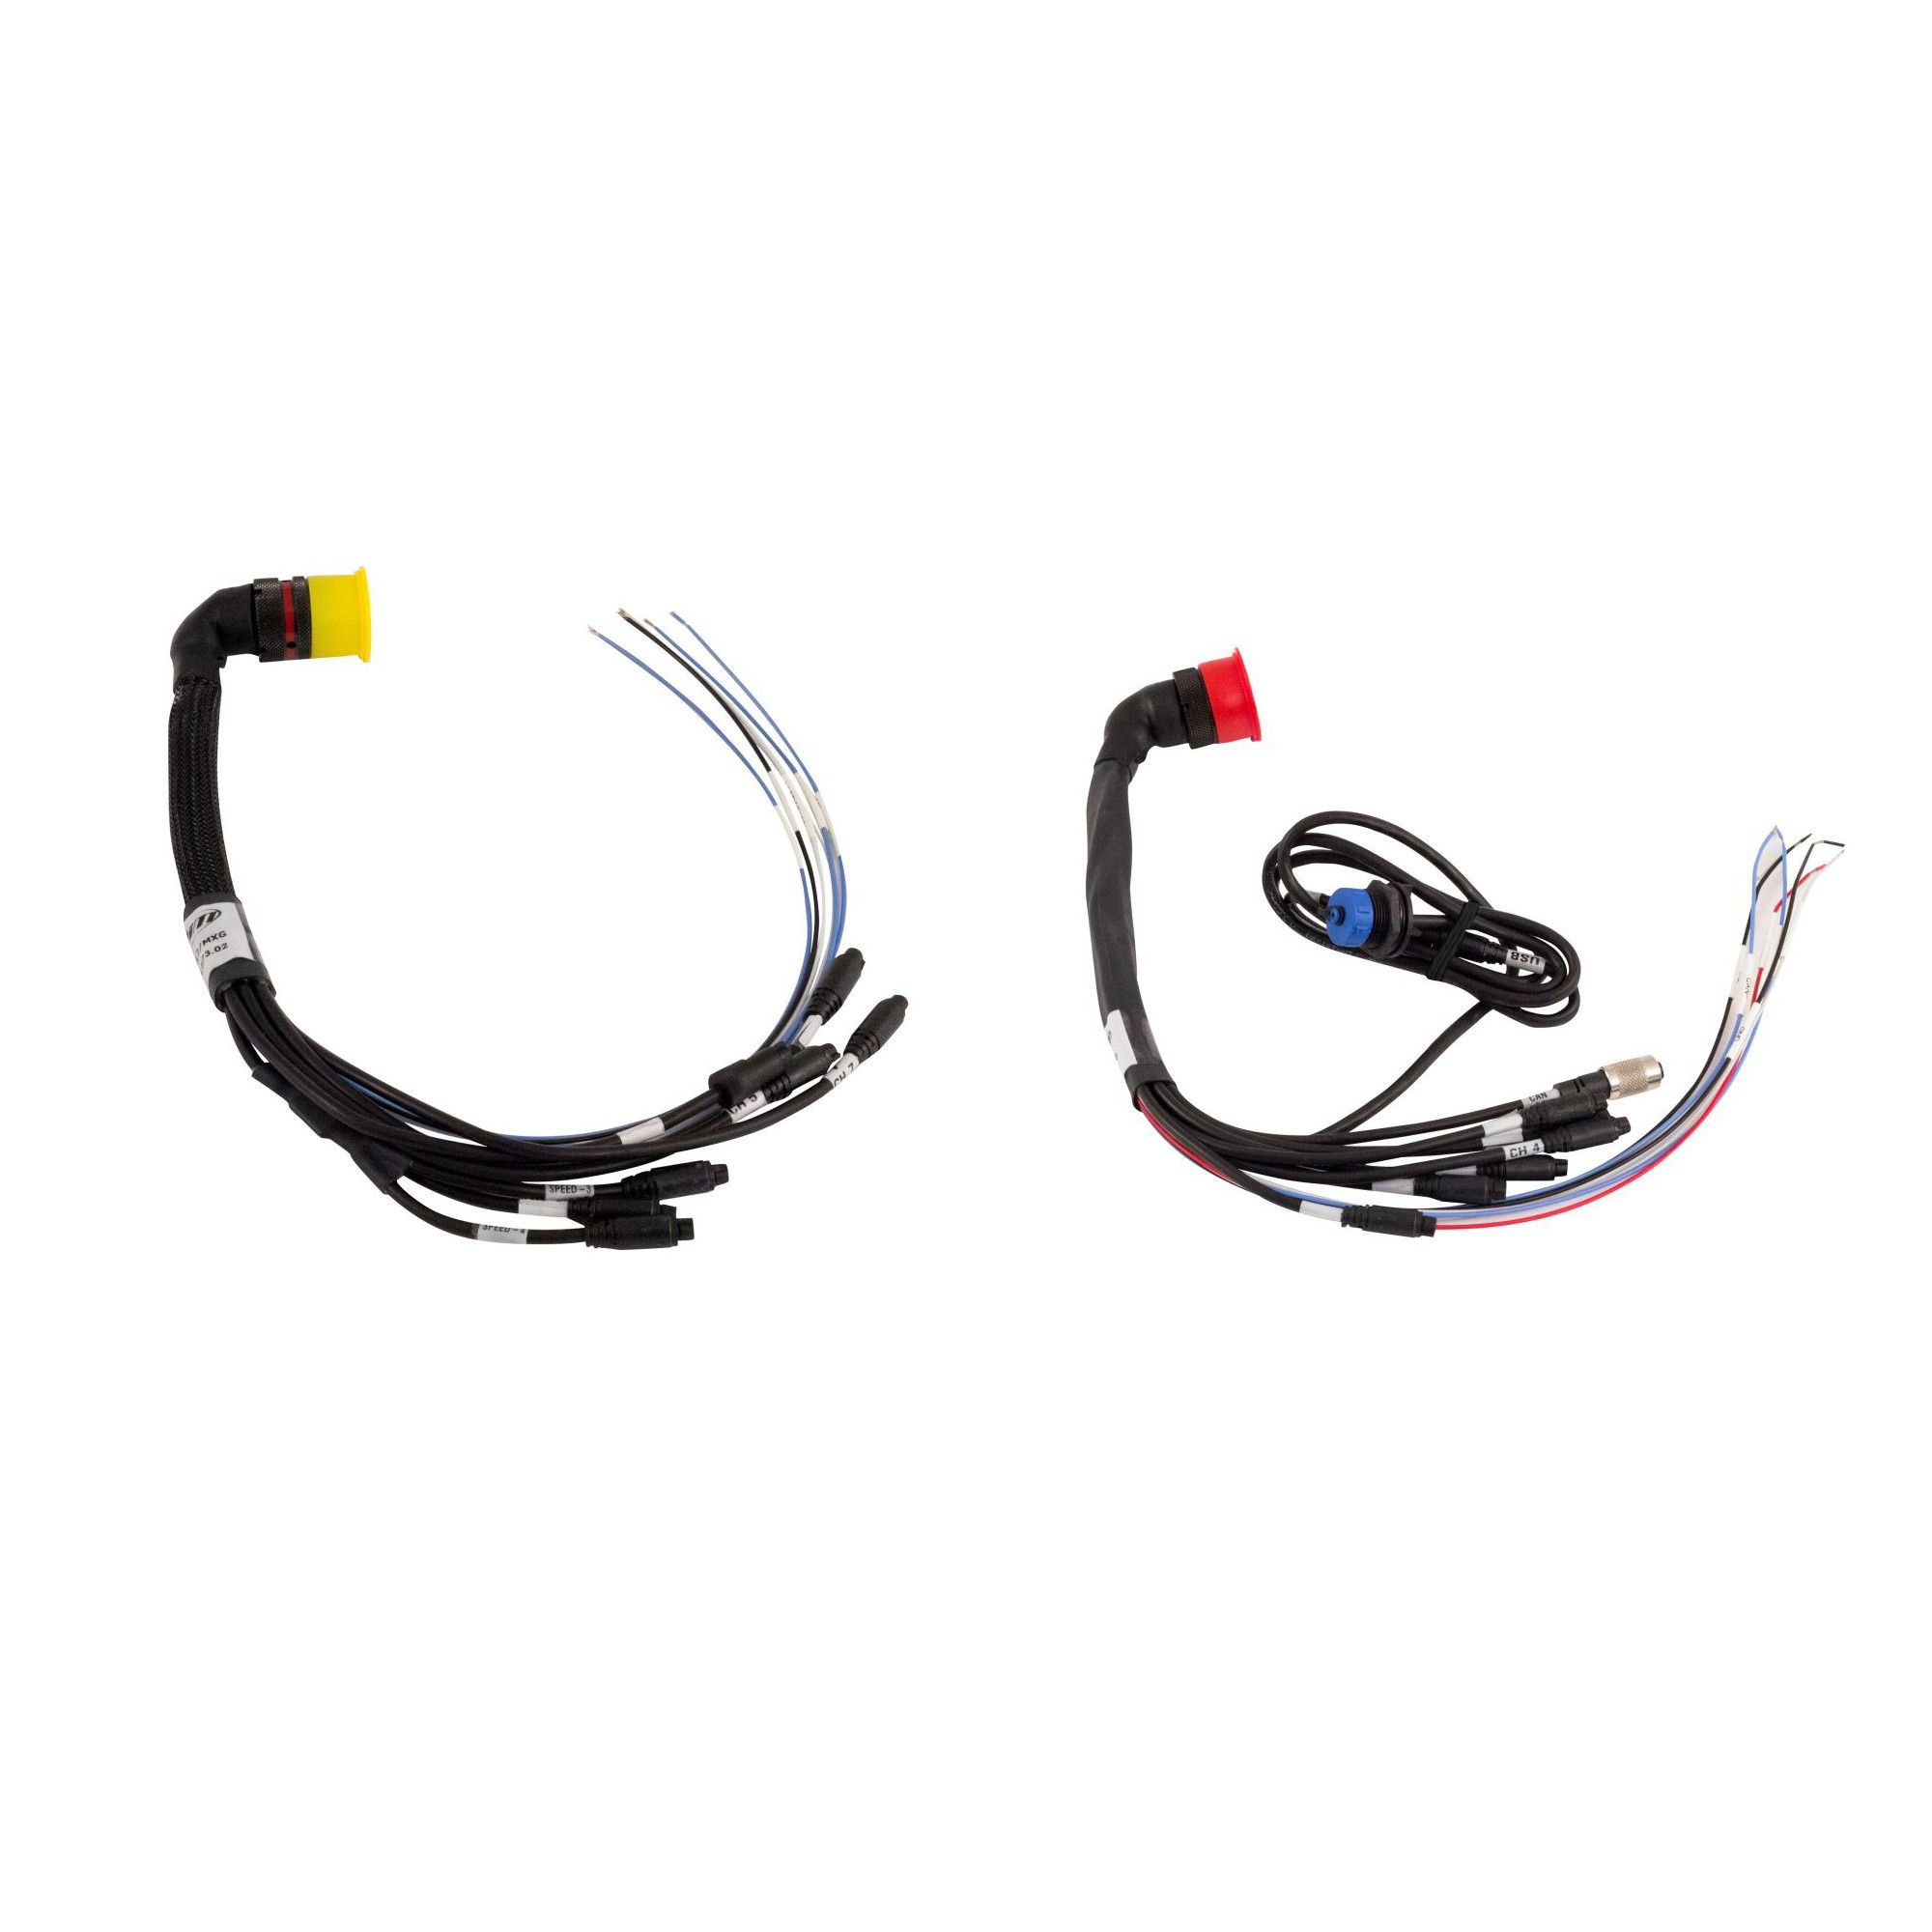 Aim Mx Series Dash Logger Replacement Standard Wiring